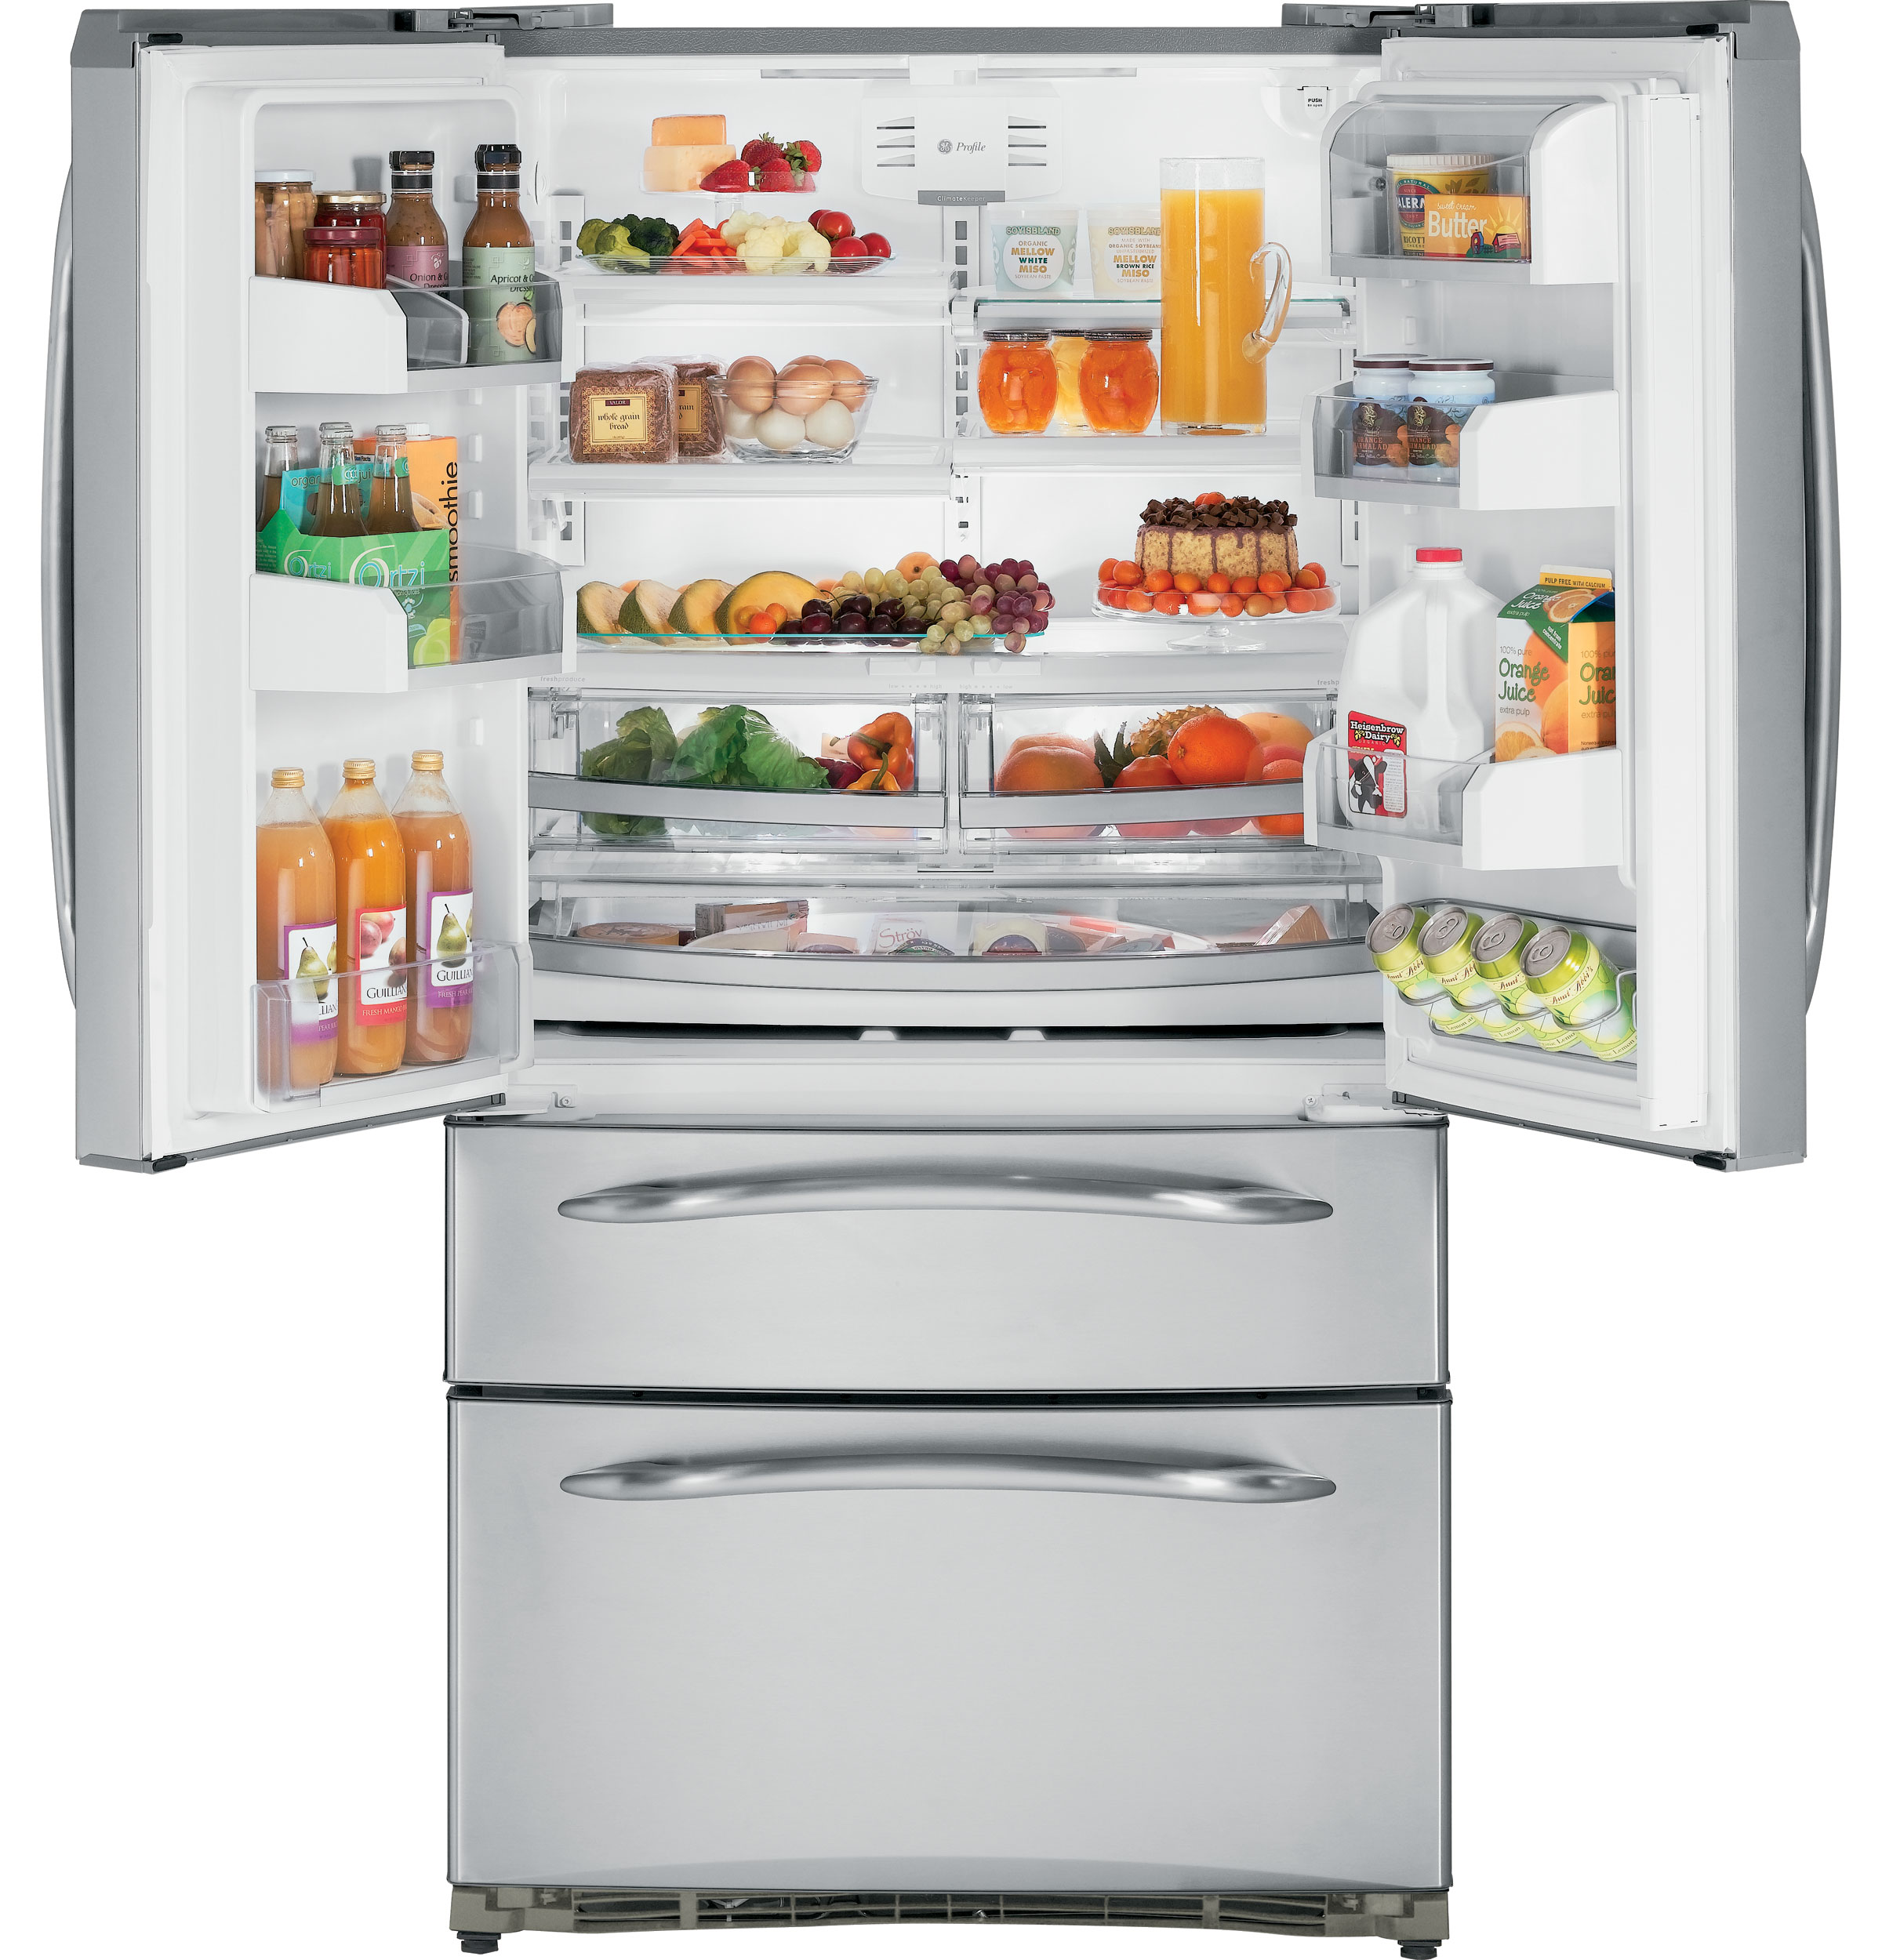 Ge Profile 249 Cu Ft Refrigerator With Armoire Styling Compressor Diagram Free Download Wiring Product Image